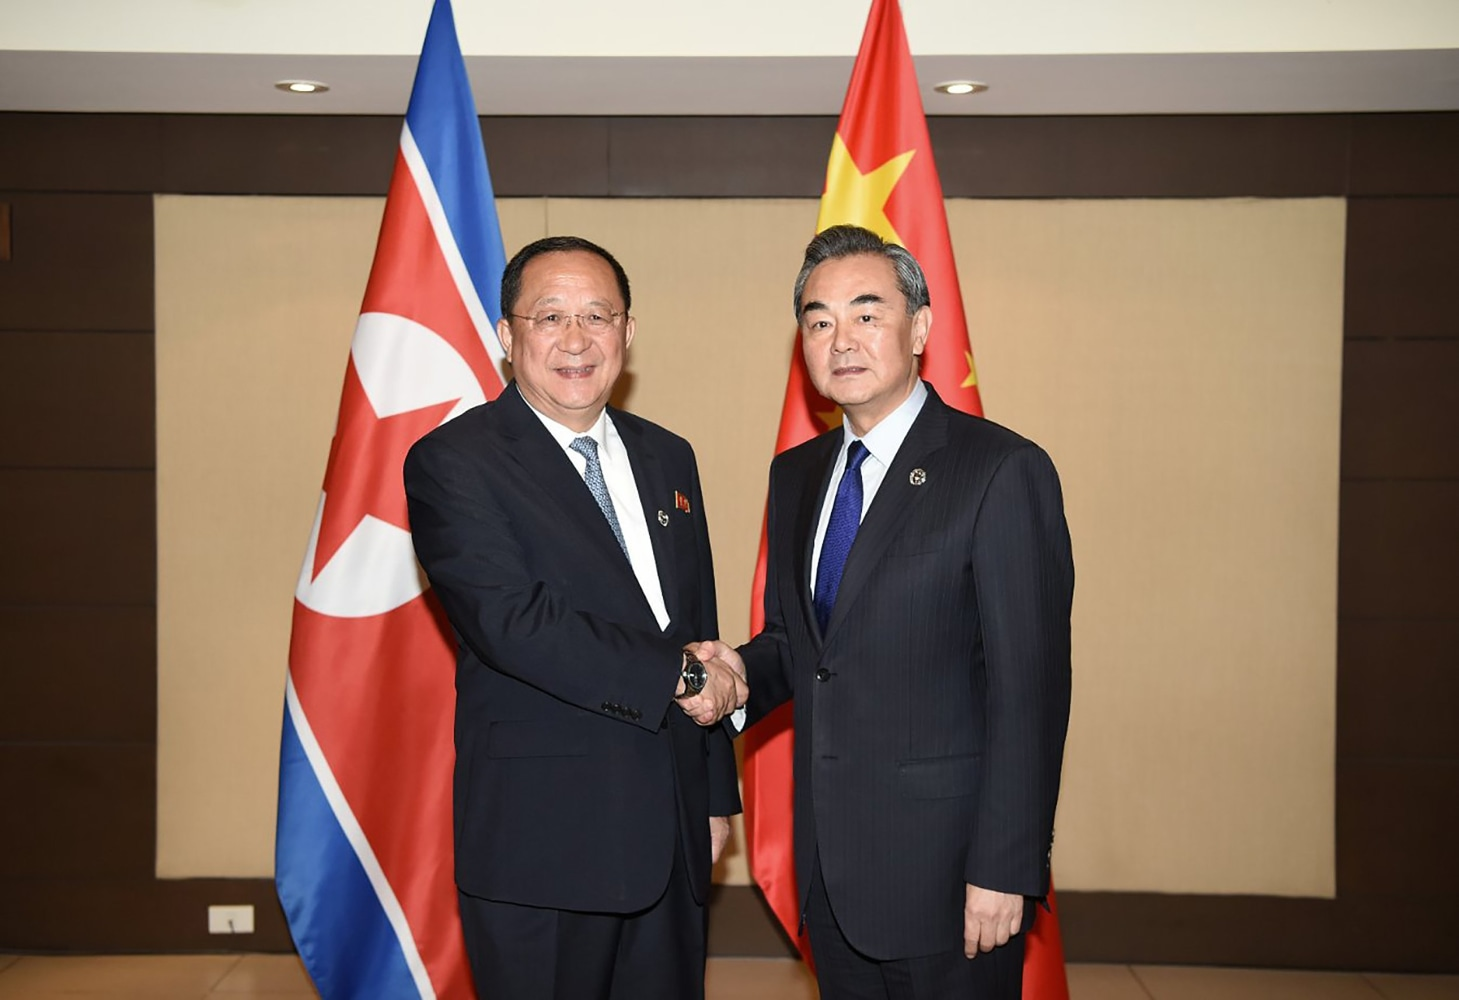 North Korean foreign minister meets with South Korean counterpart at ASEAN